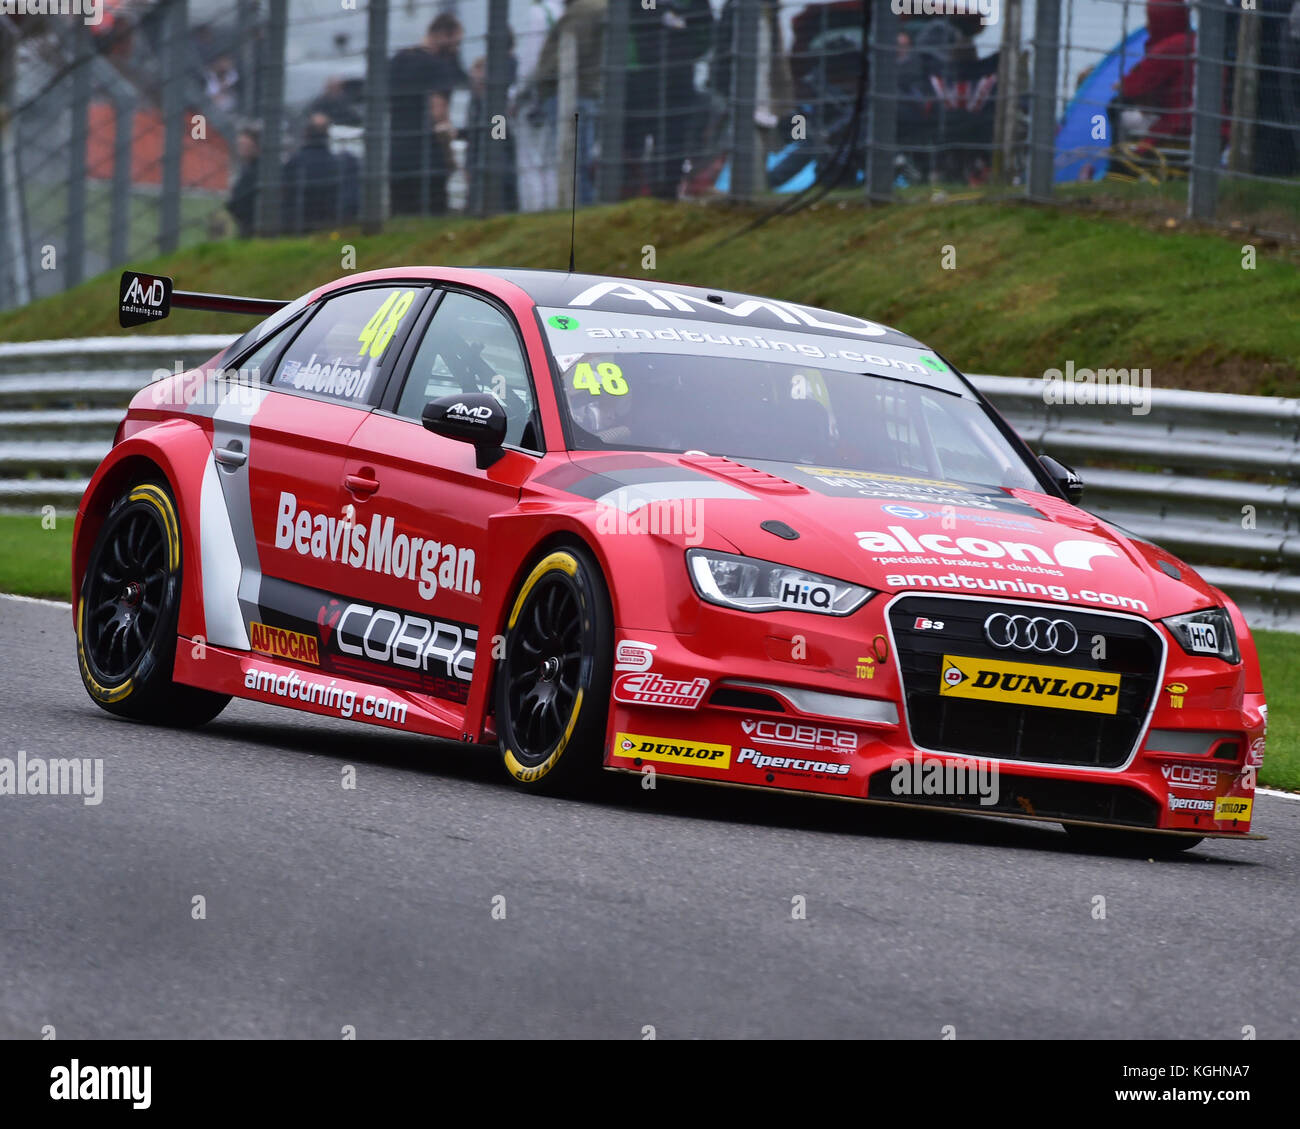 Uk Northern Saloon Car Racing In The  S